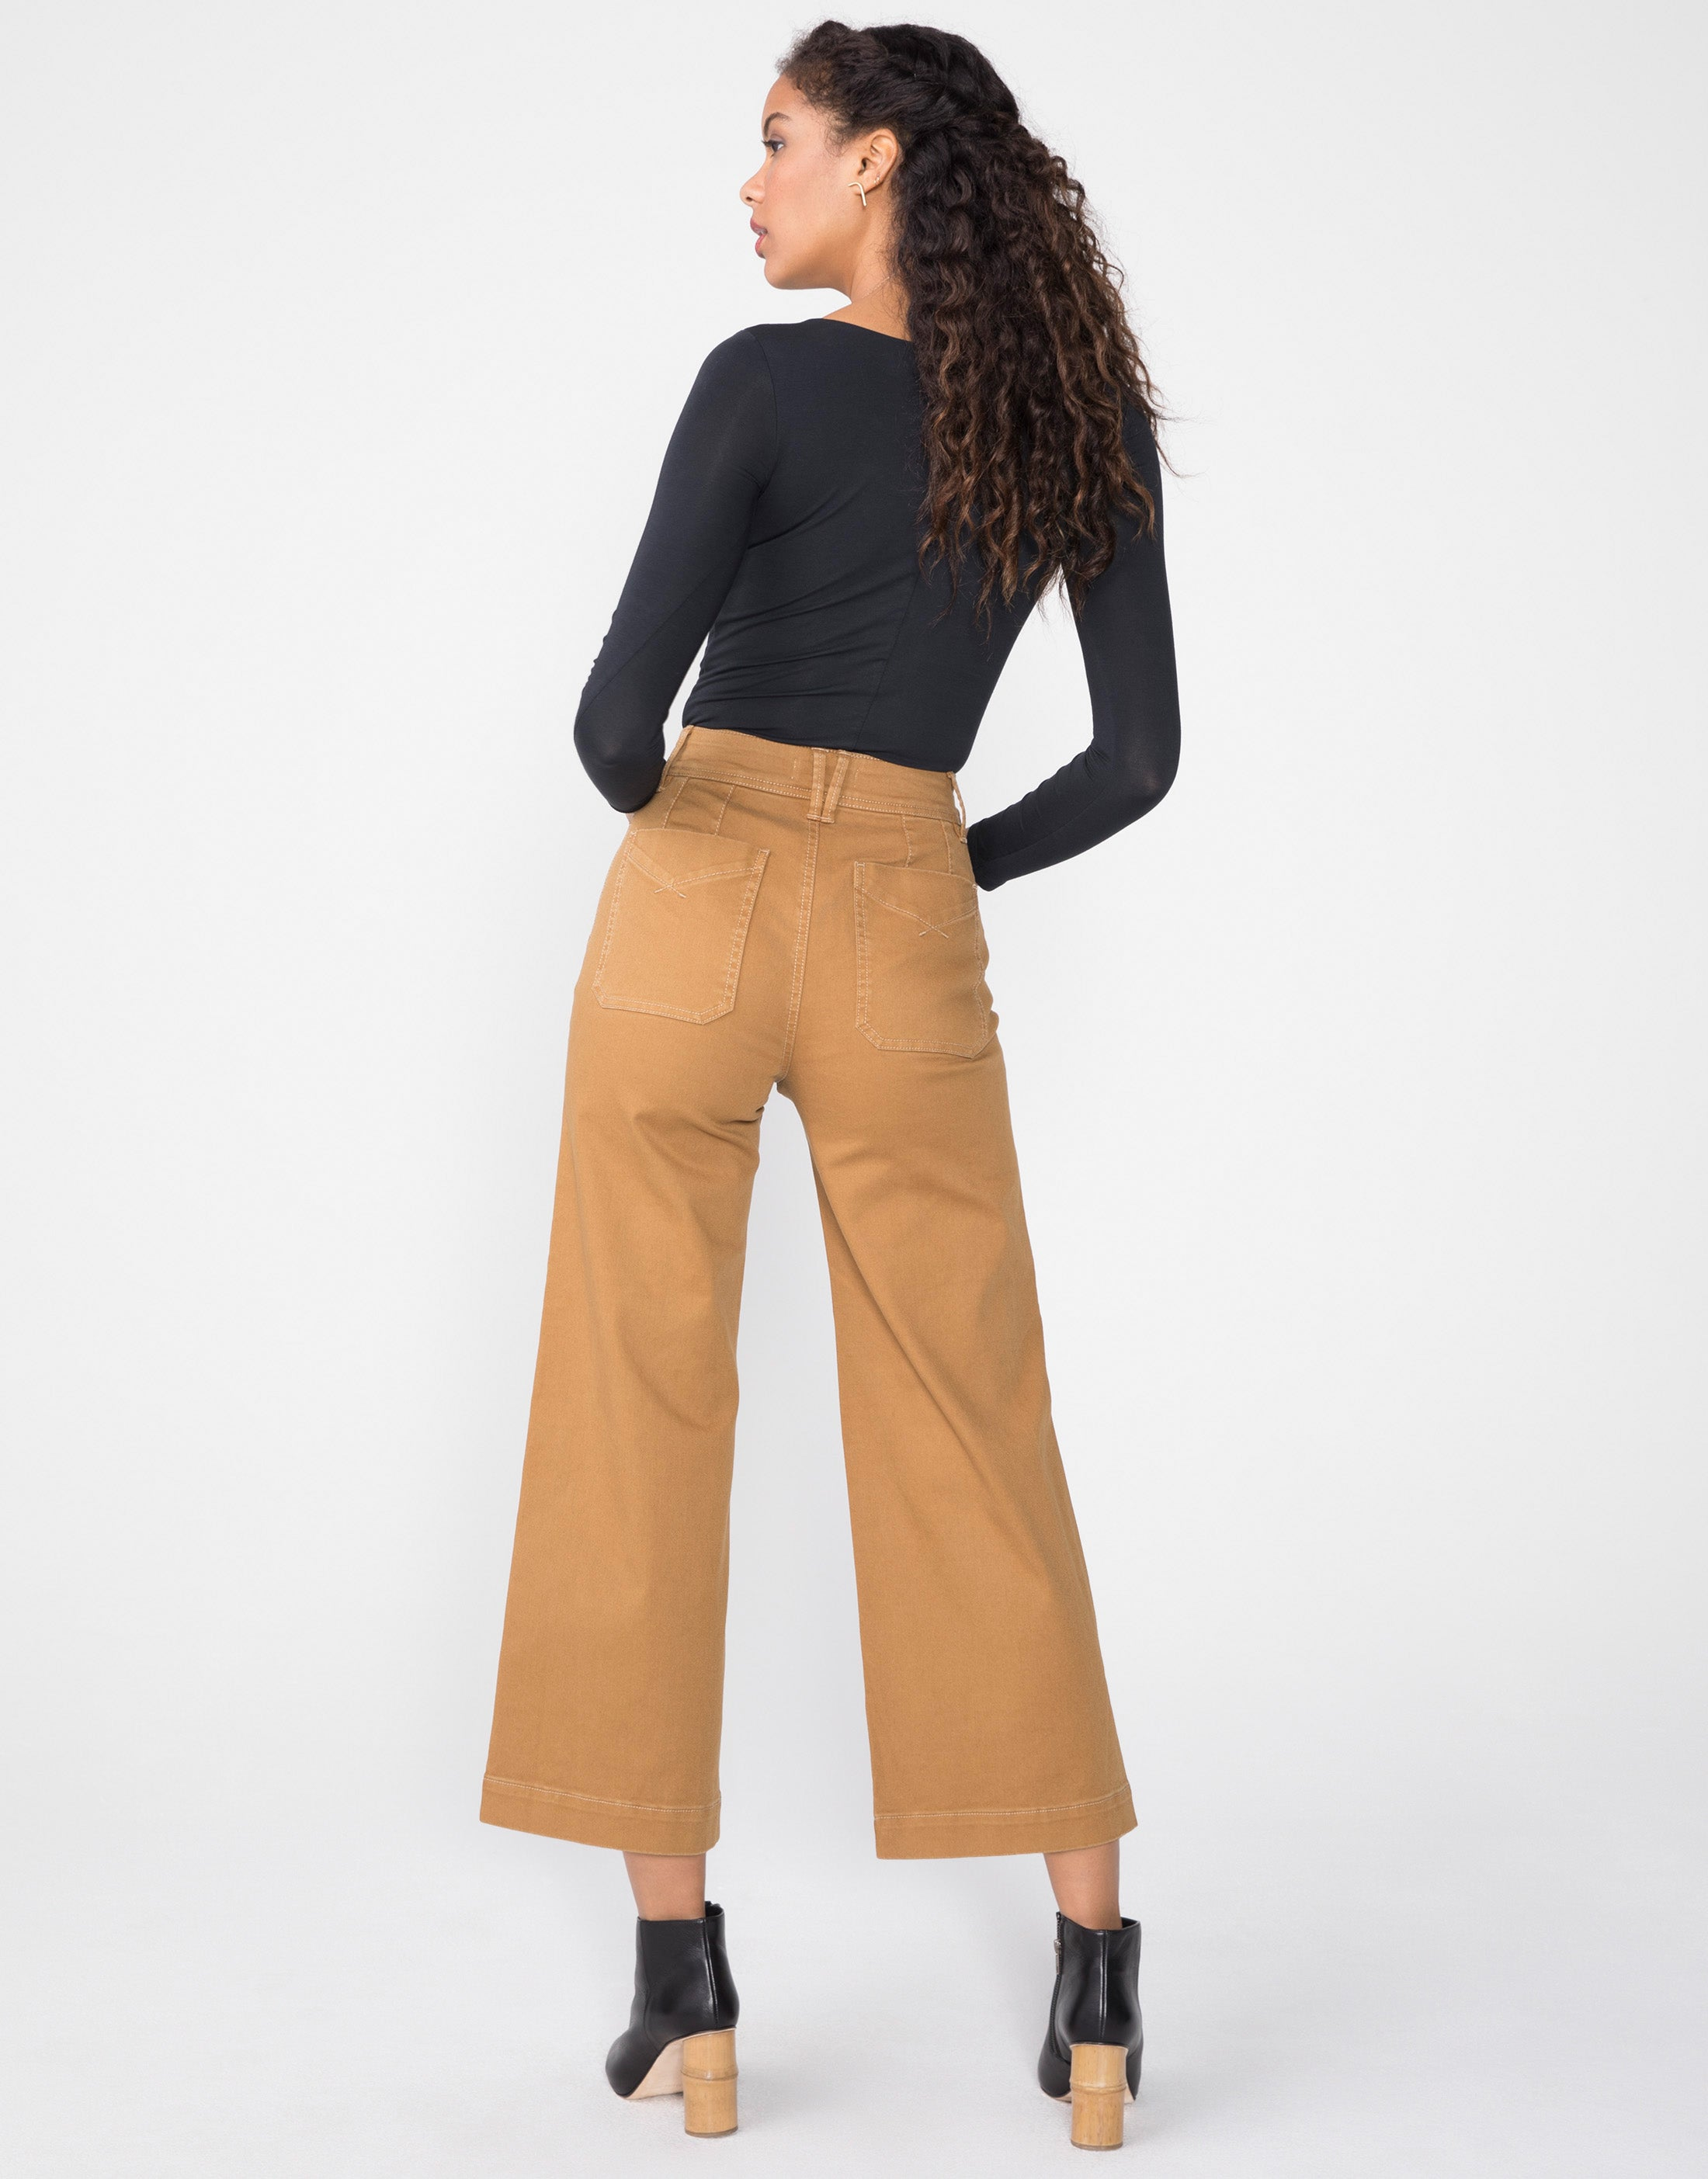 GEMMA Super High Waist Mod Sailor in Camel